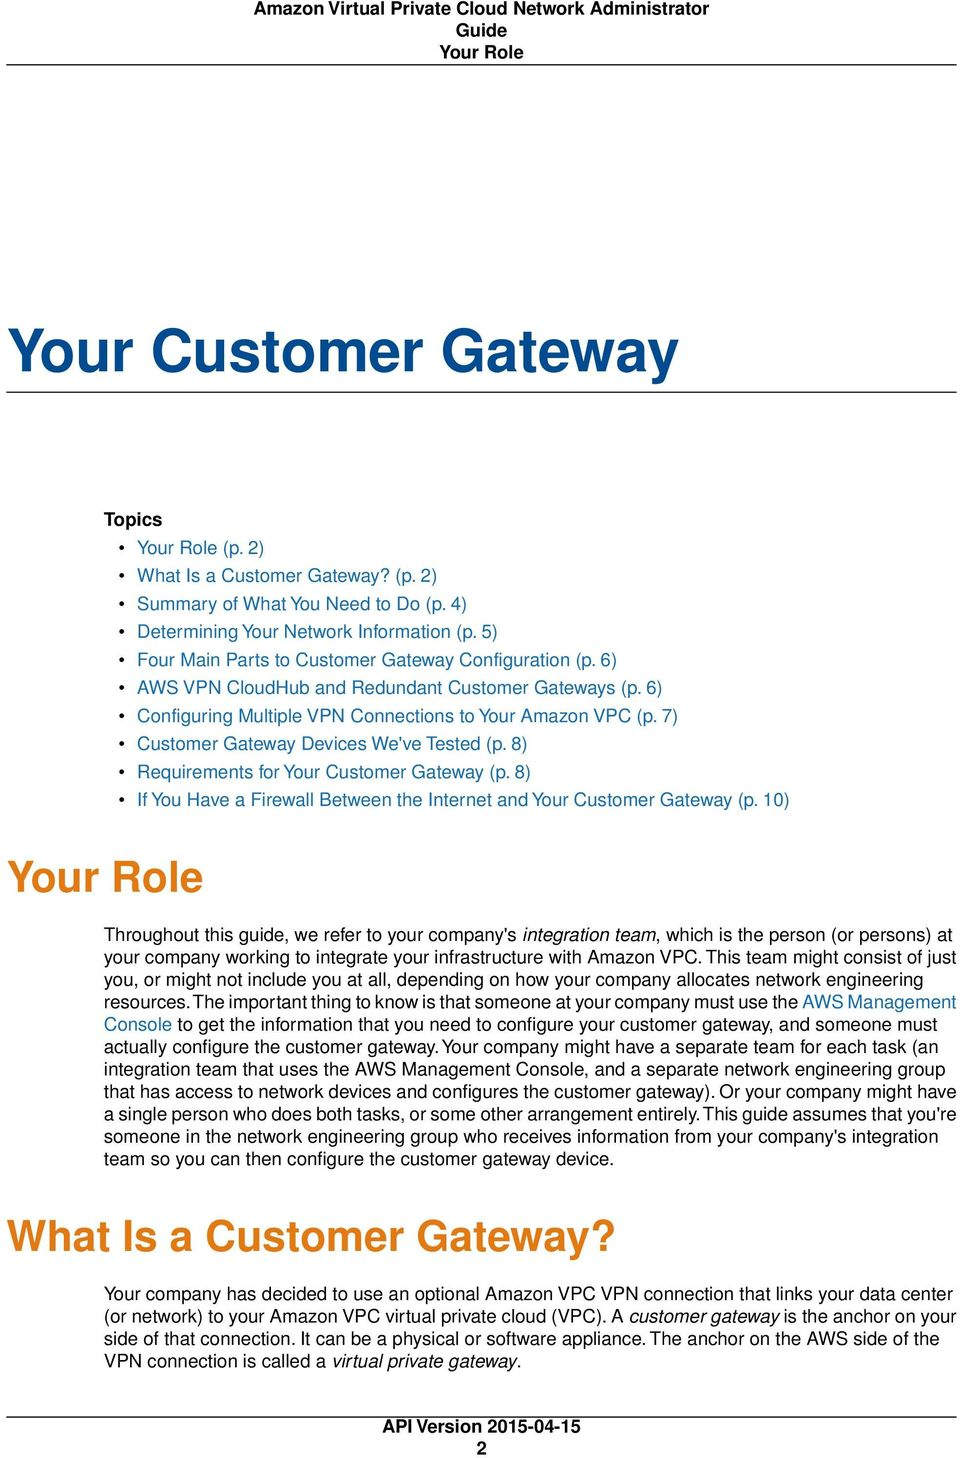 medium resolution of 7 customer gateway devices we ve tested p 8 requirements for